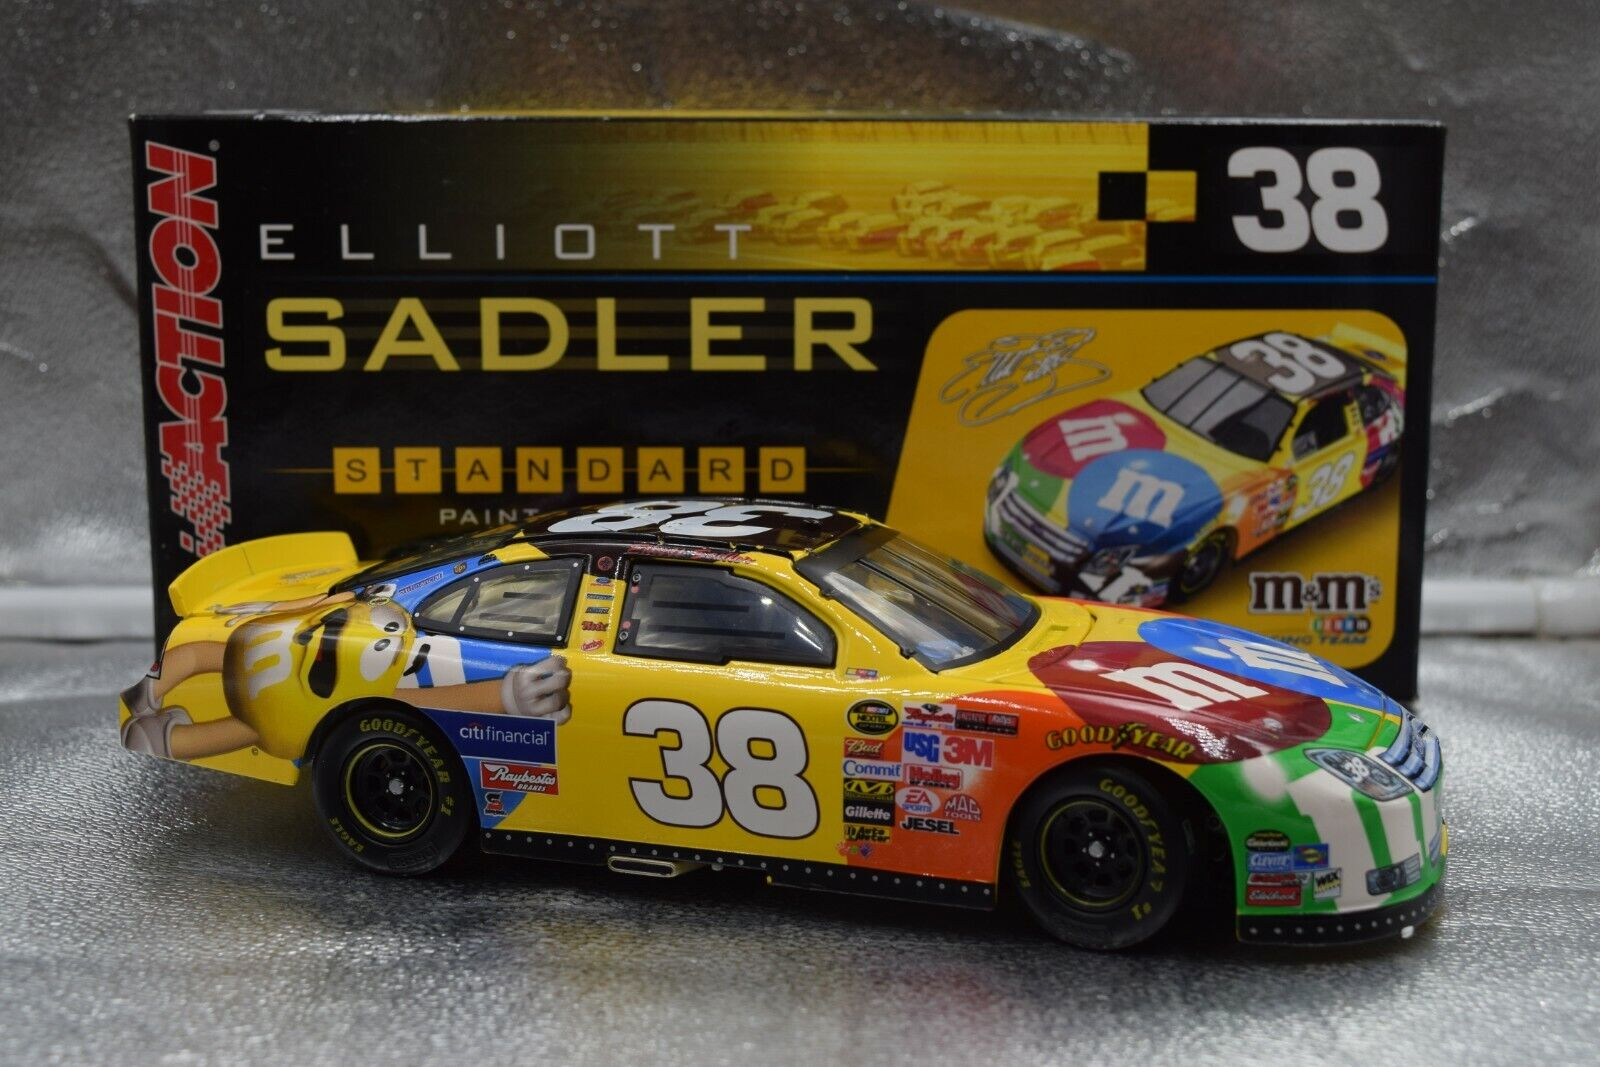 2006 Elliott Sadler 'M&M 's   Ford Ford Ford Fusion 1 24 Action CWC b058f4